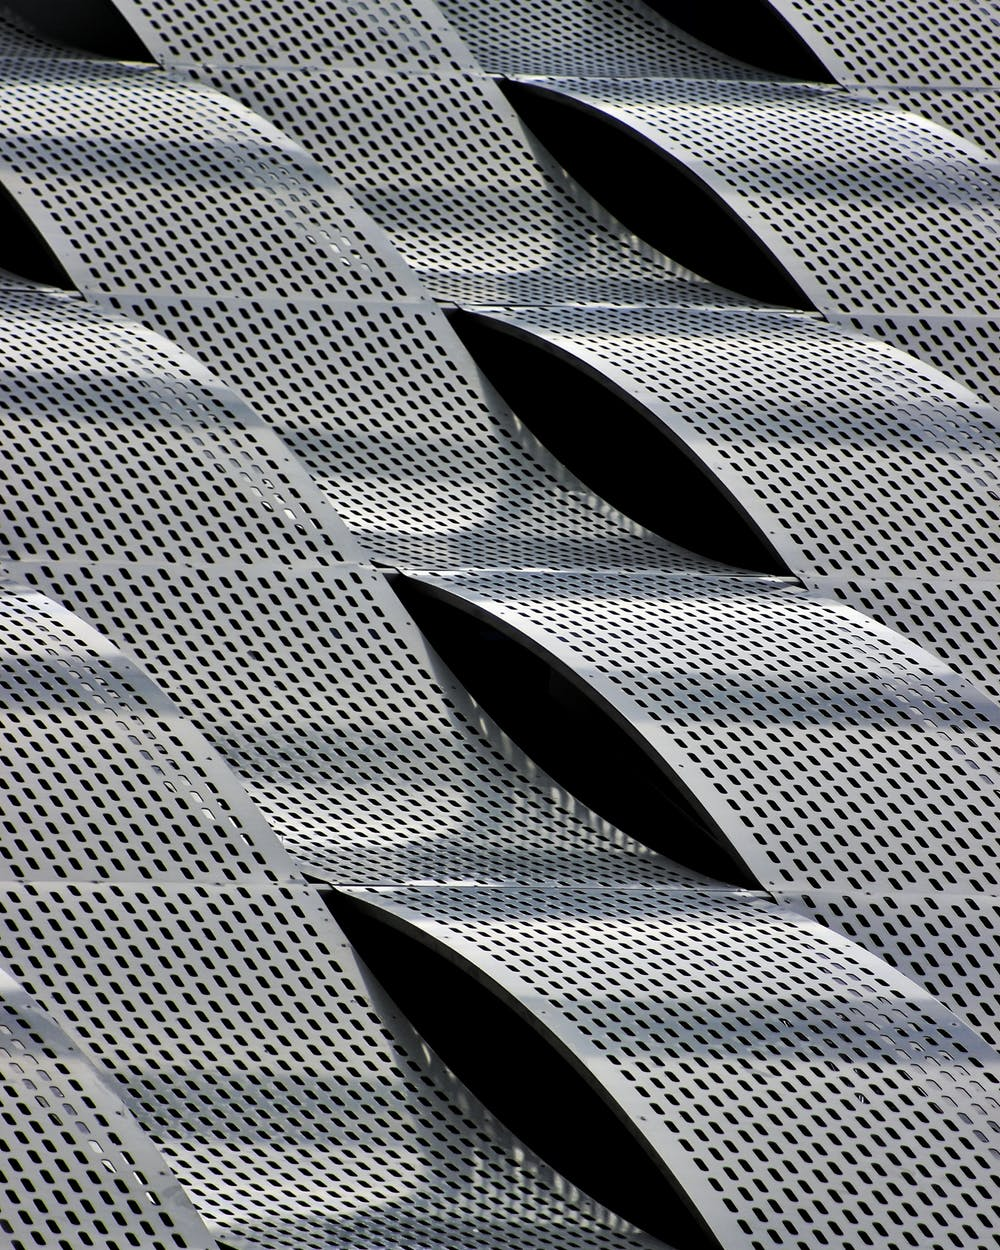 crystal lake illinois services, metal perforating, perforating steel sheets